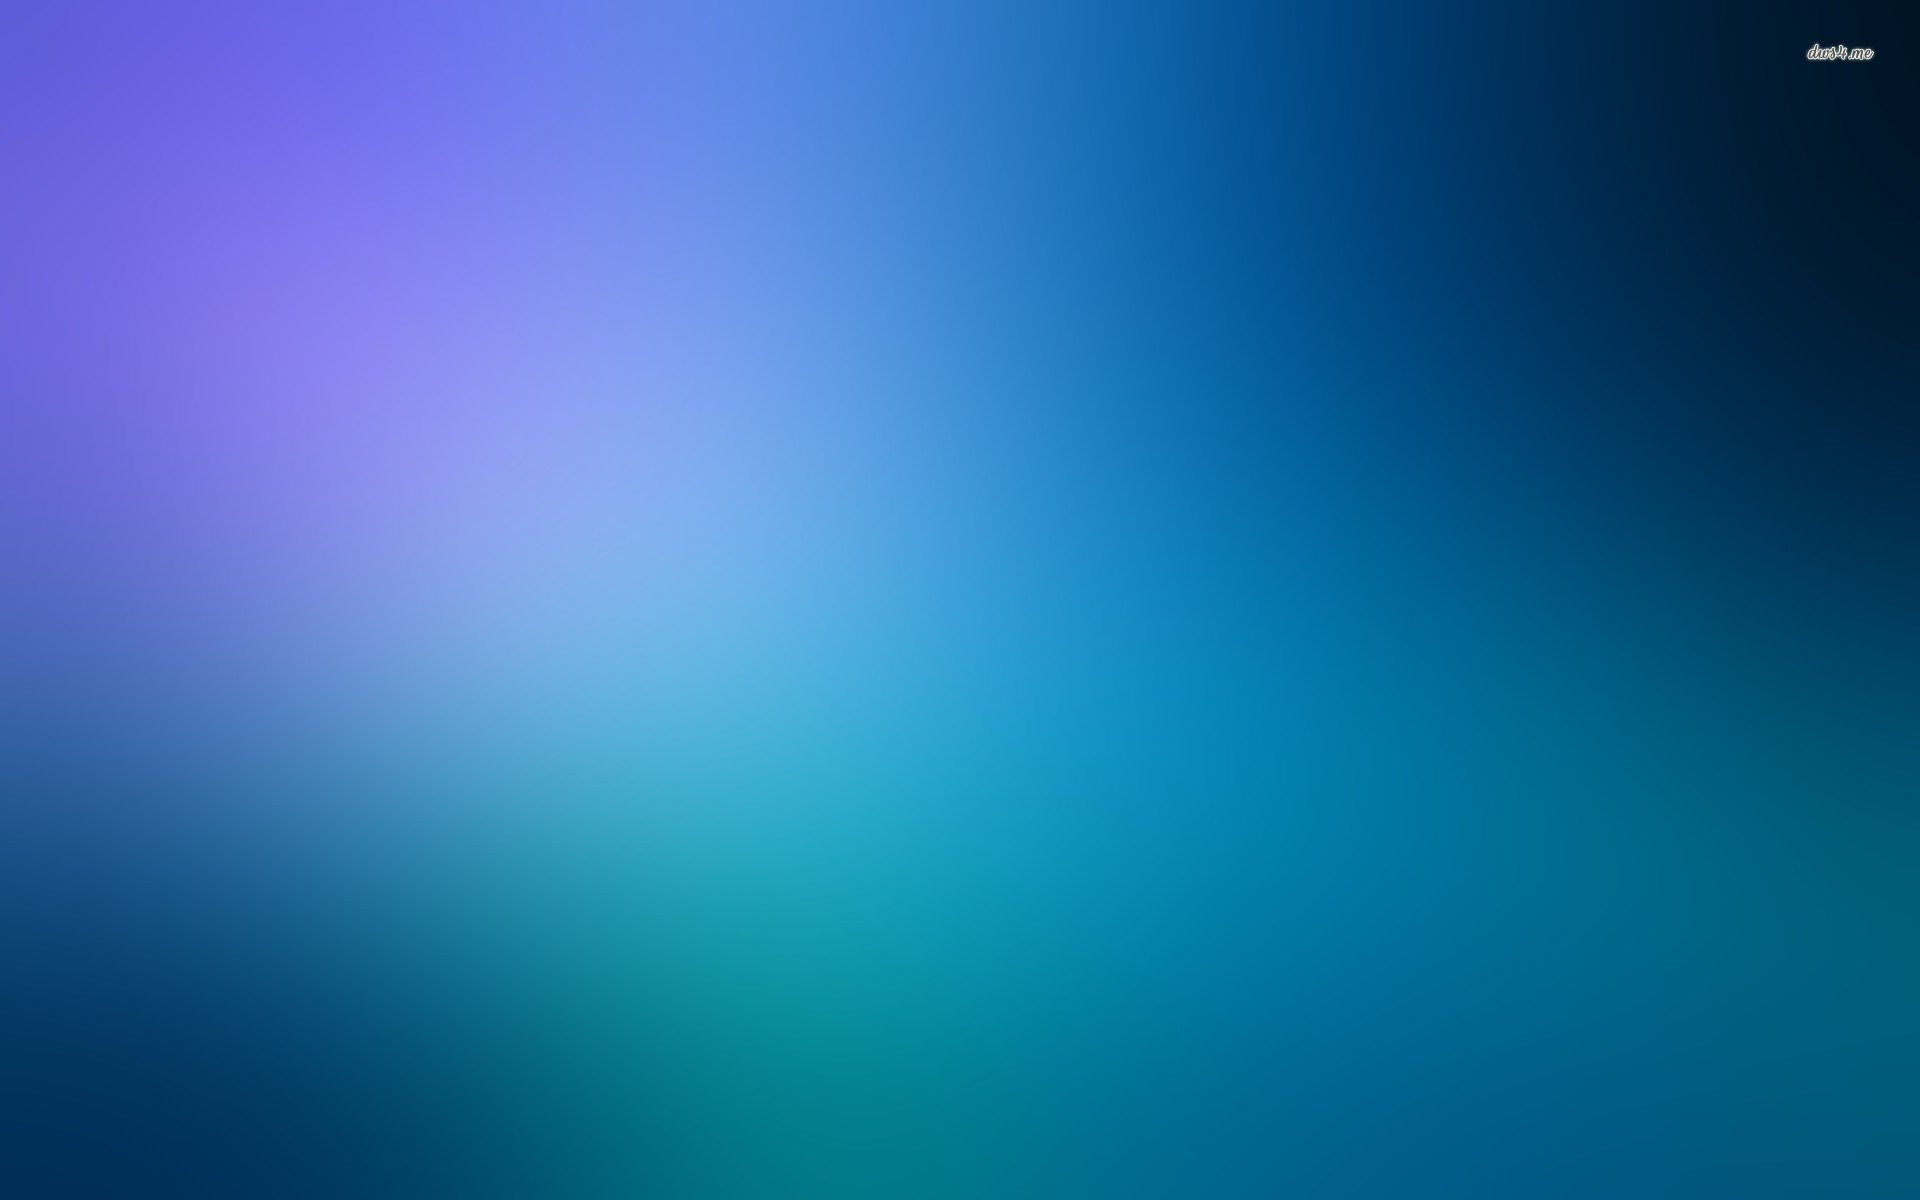 wallpaper background gradient blue - photo #22